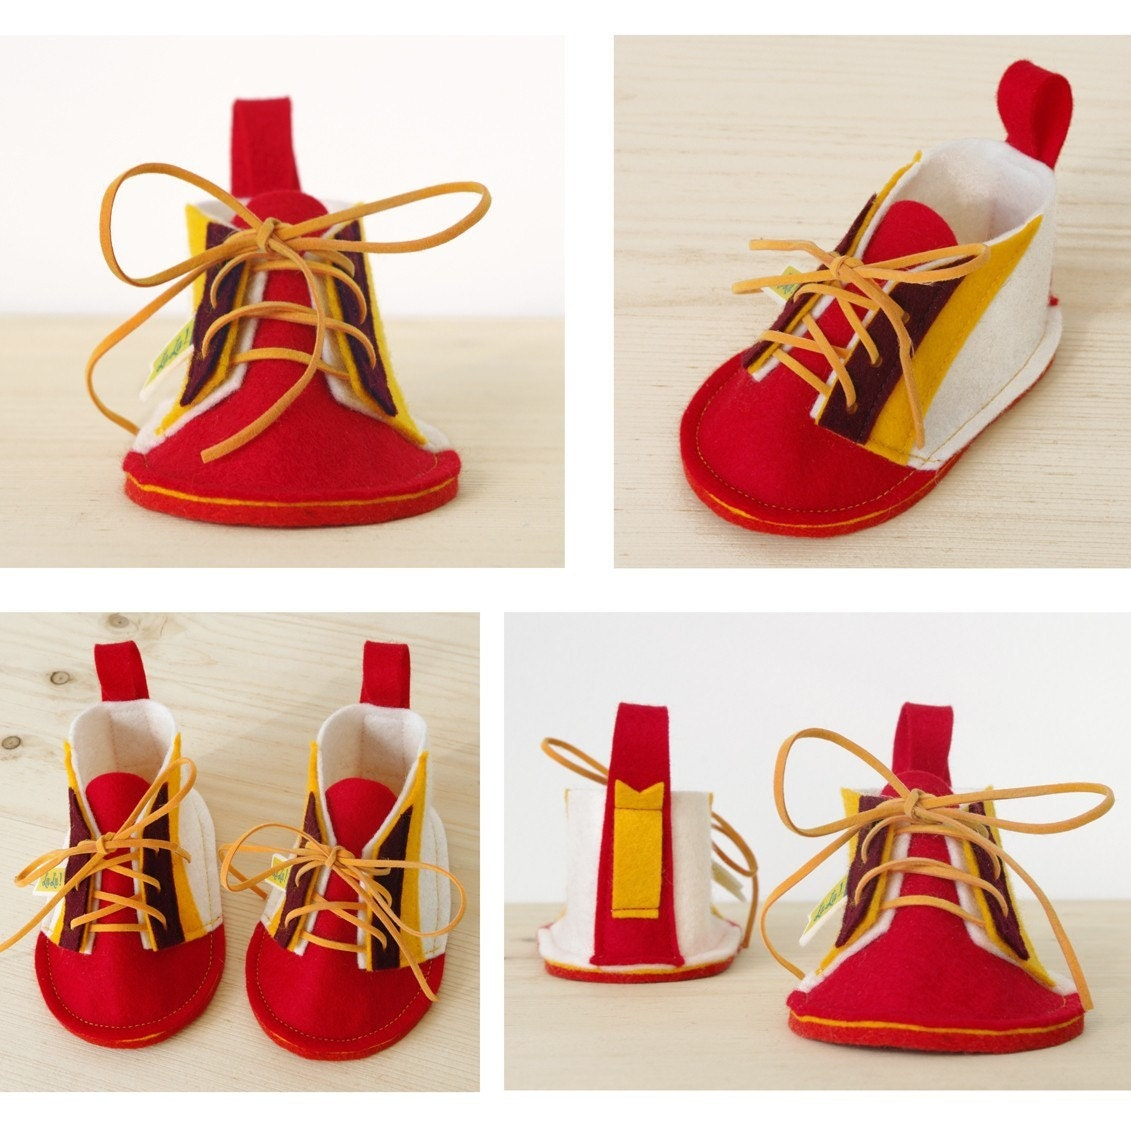 Eco baby booties Red Wawa soft sole baby shoes, Retro Modern design for boys & girls - red, white, yellow